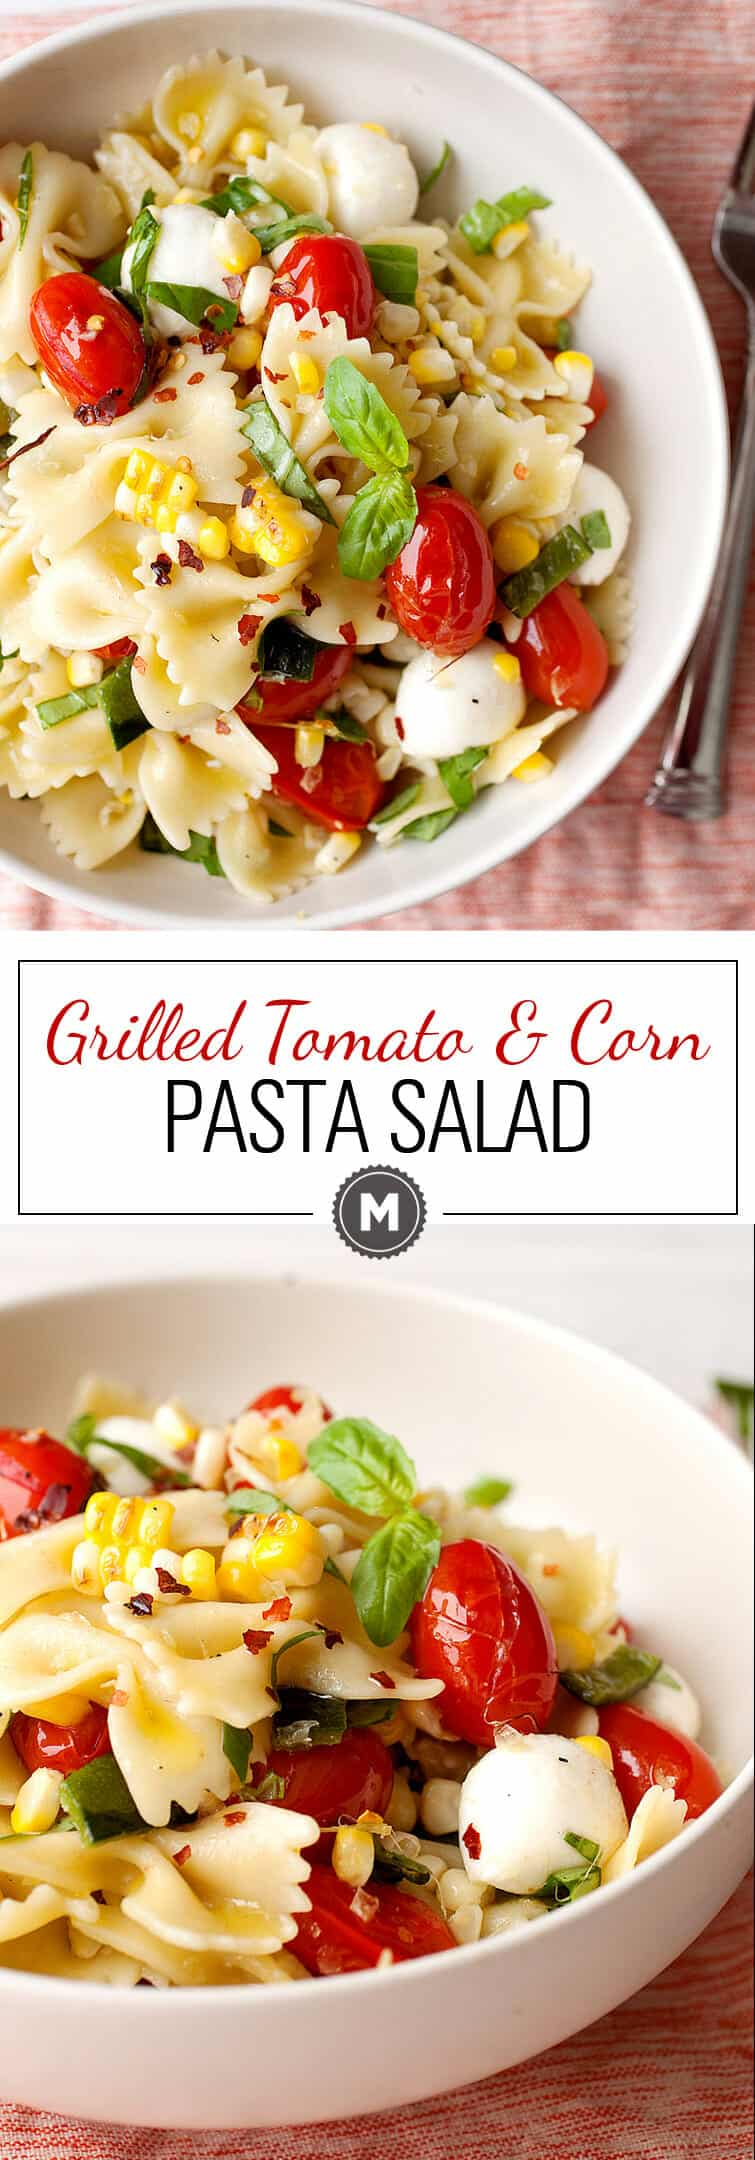 Grilled Tomato and Corn Pasta Salad: 🌽🍅🌽 A perfect summer pasta salad with blistered grape tomatoes, charred sweet corn, and fresh mozzarella balls. Make it as a light summer dinner, weekday lunches, or it's perfect for an afternoon picnic! | macheesmo.com